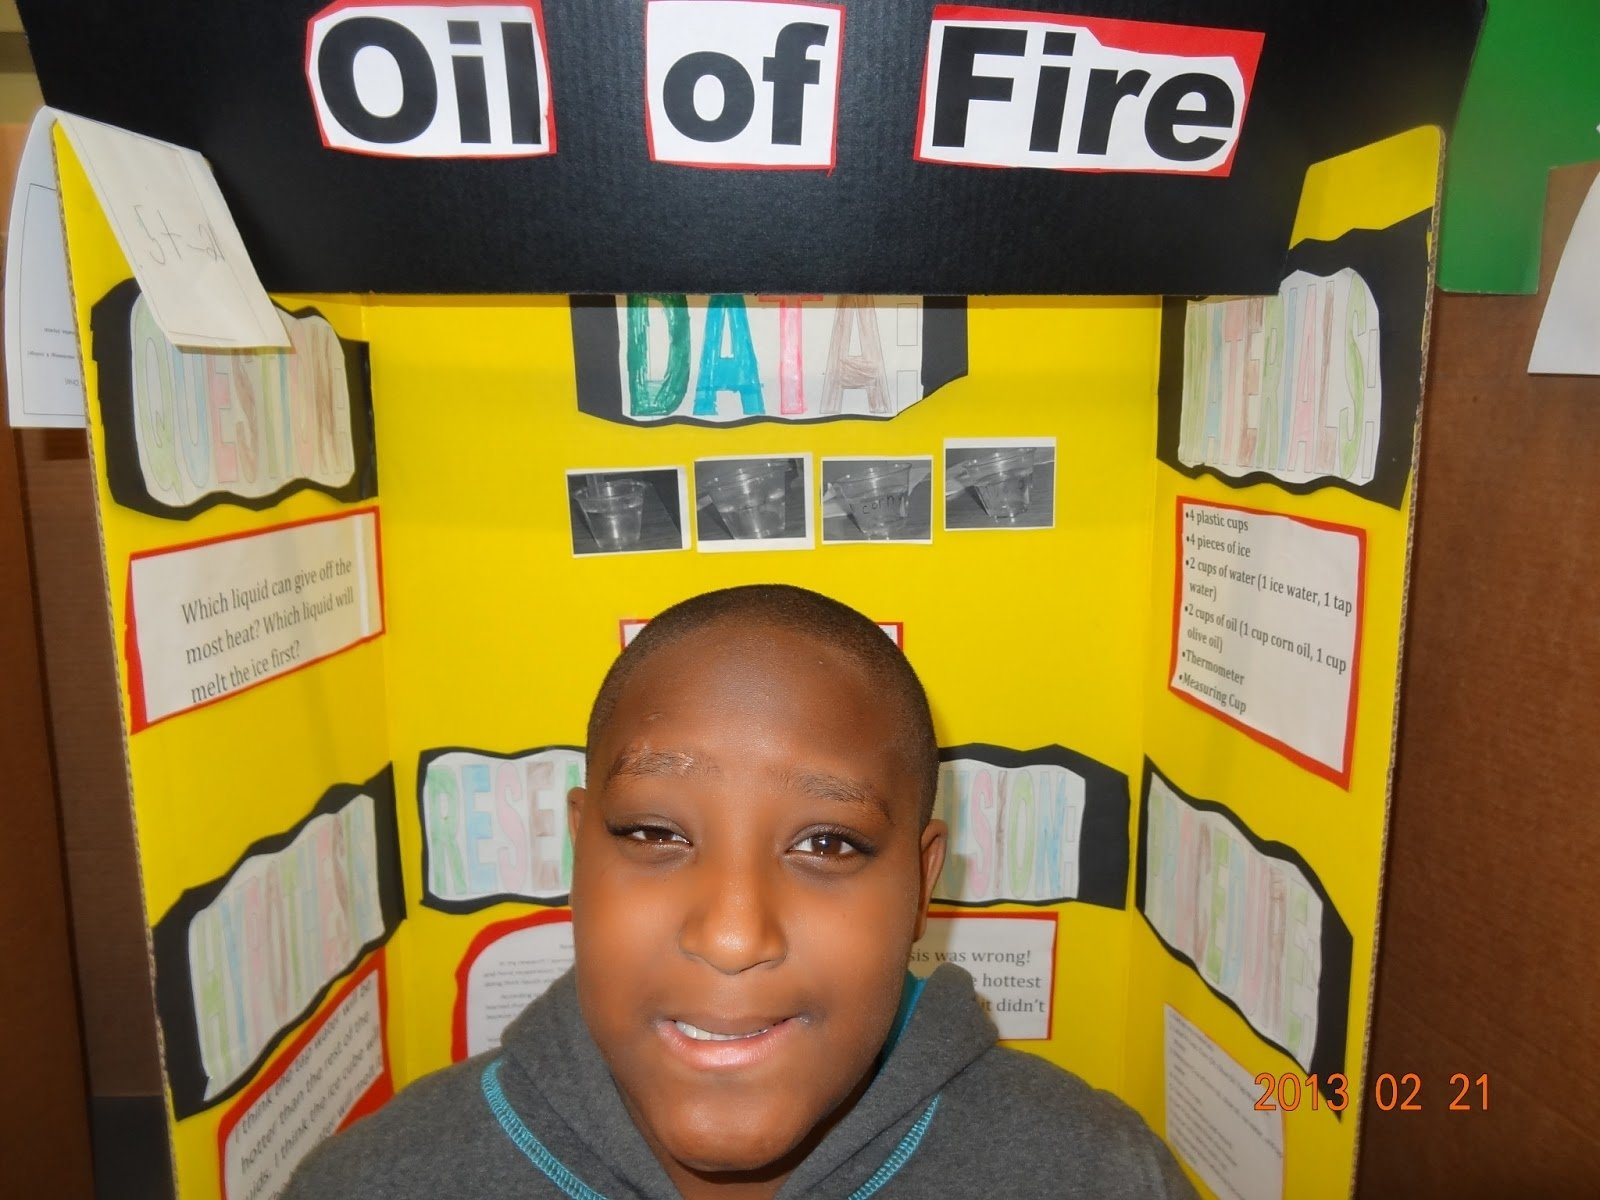 10 Most Recommended Science Fair Projects For 8Th Graders Winning Ideas nokw woodwork 5th grade 8th grade science fair projects info 41